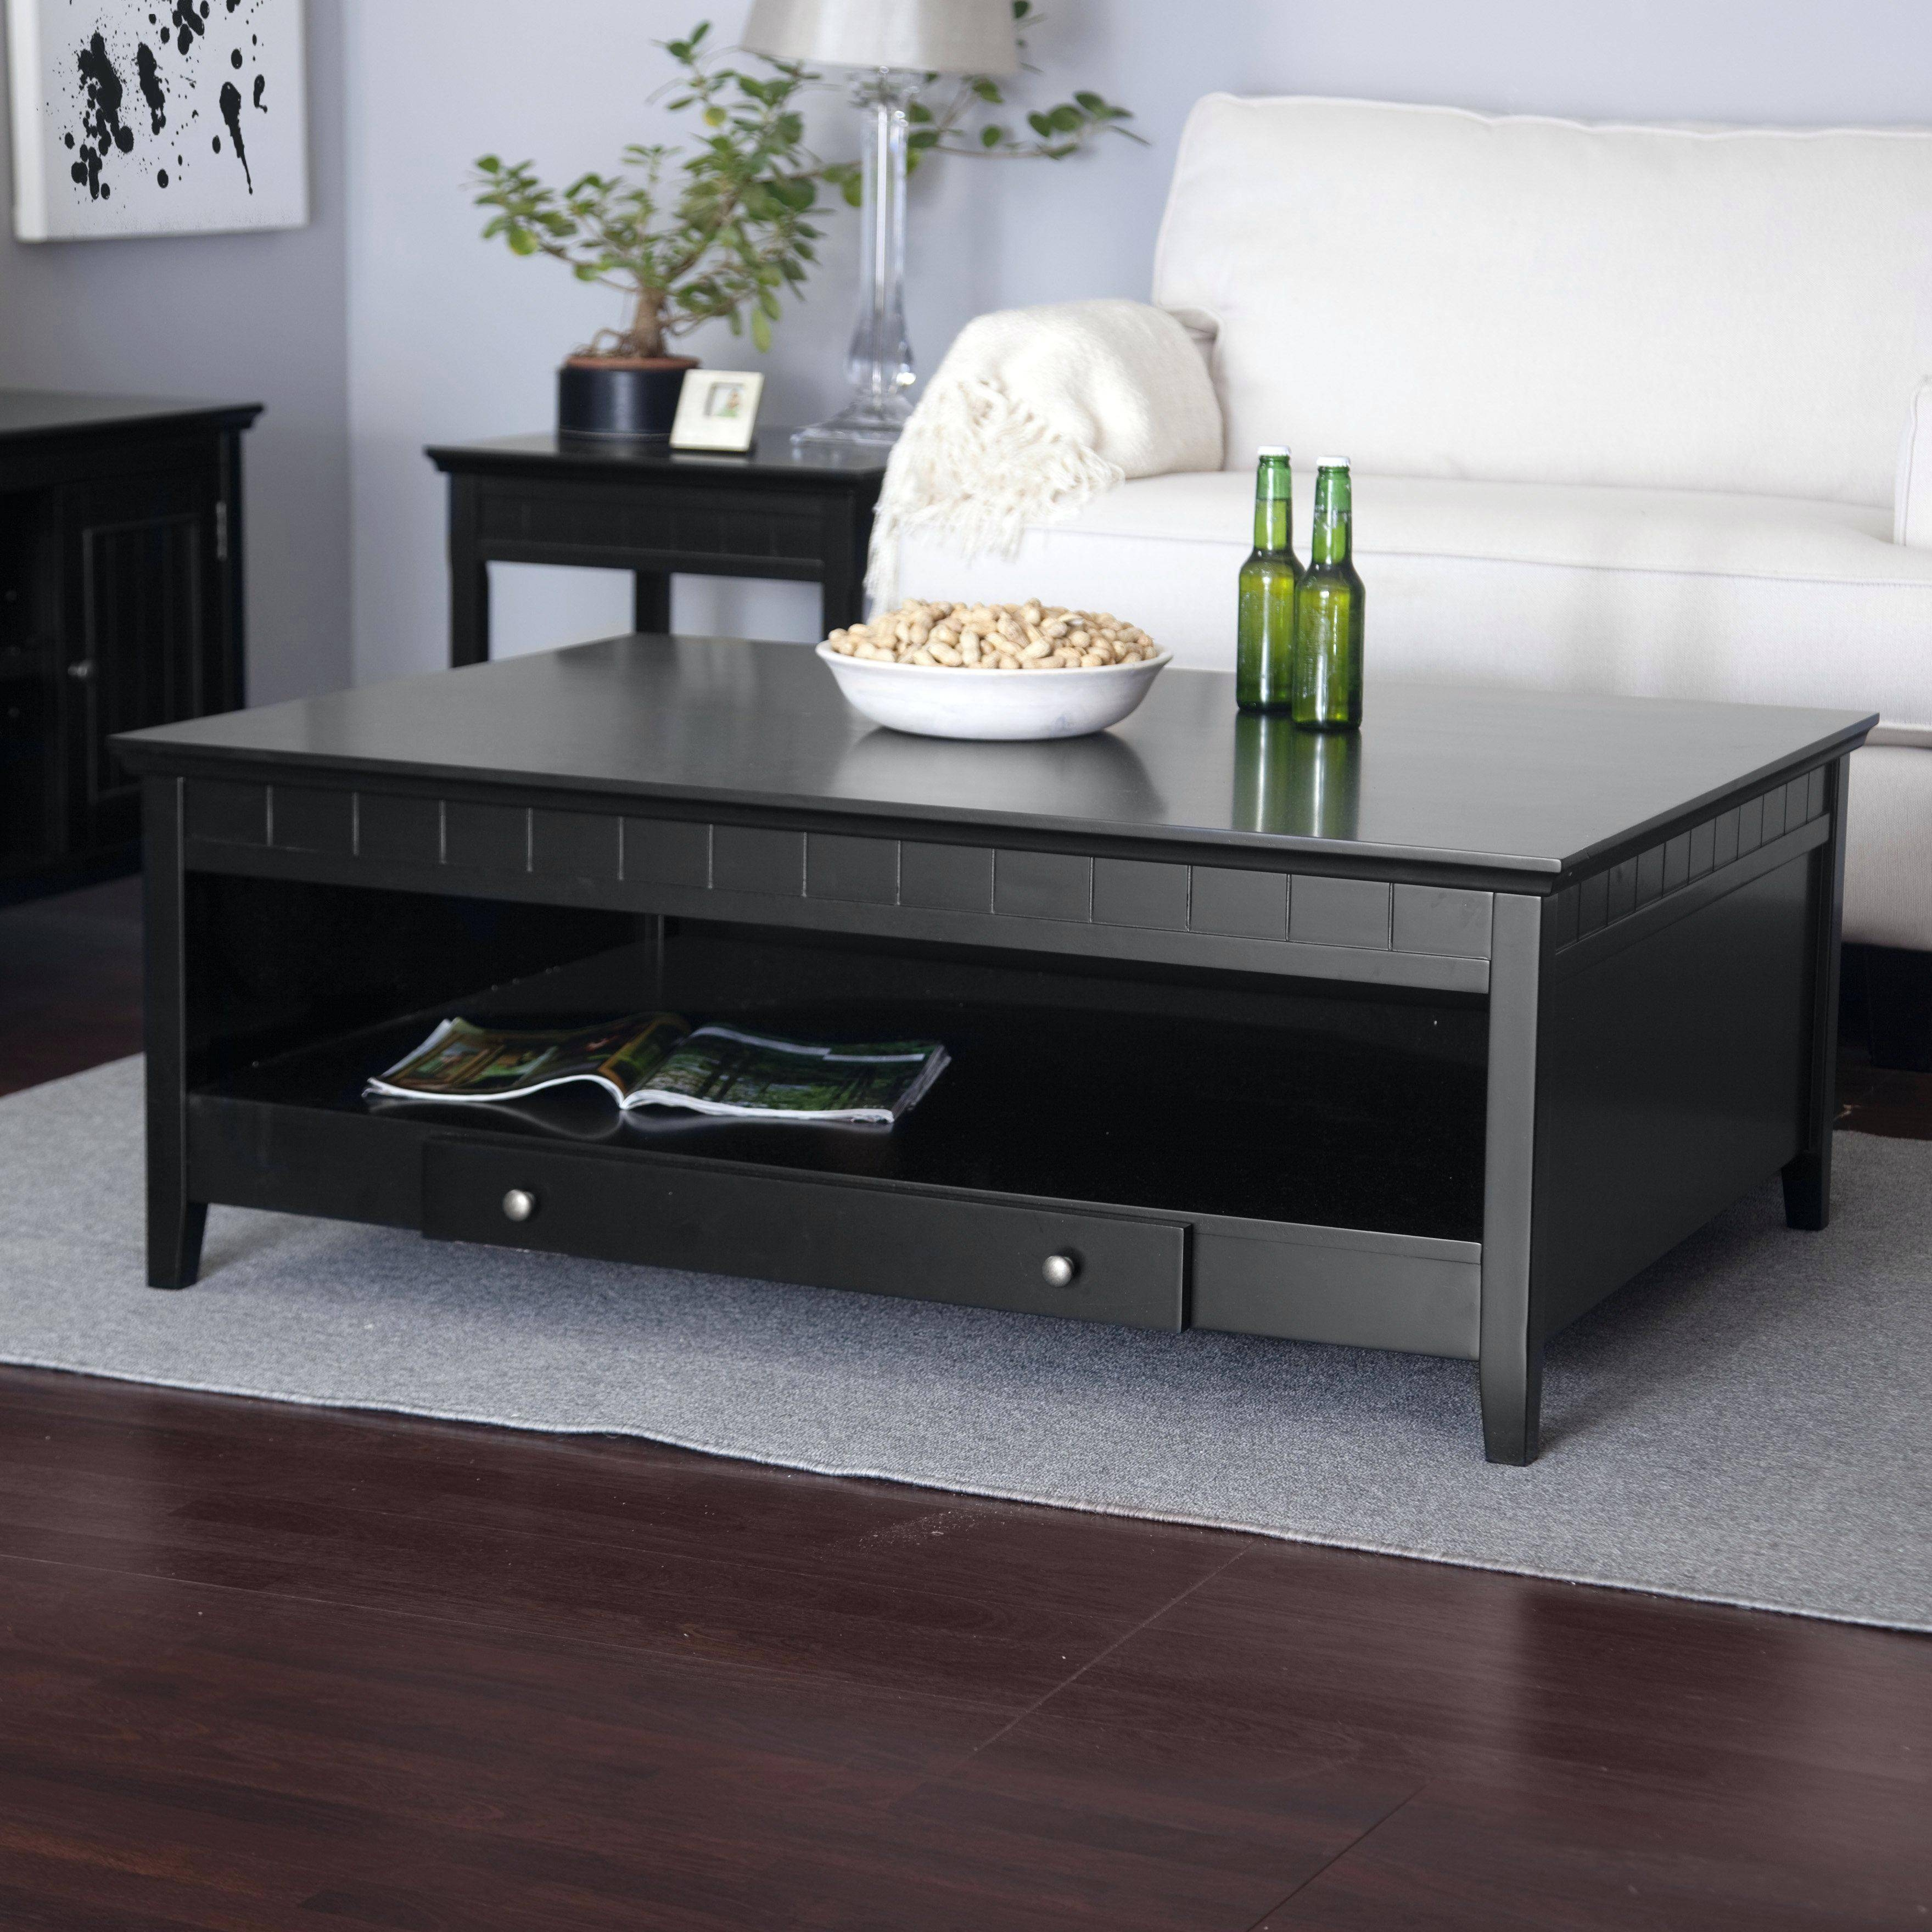 Coffee Table: Square Coffee Table Storage Large Round Coffee throughout Coffee Tables With Storage (Image 11 of 30)